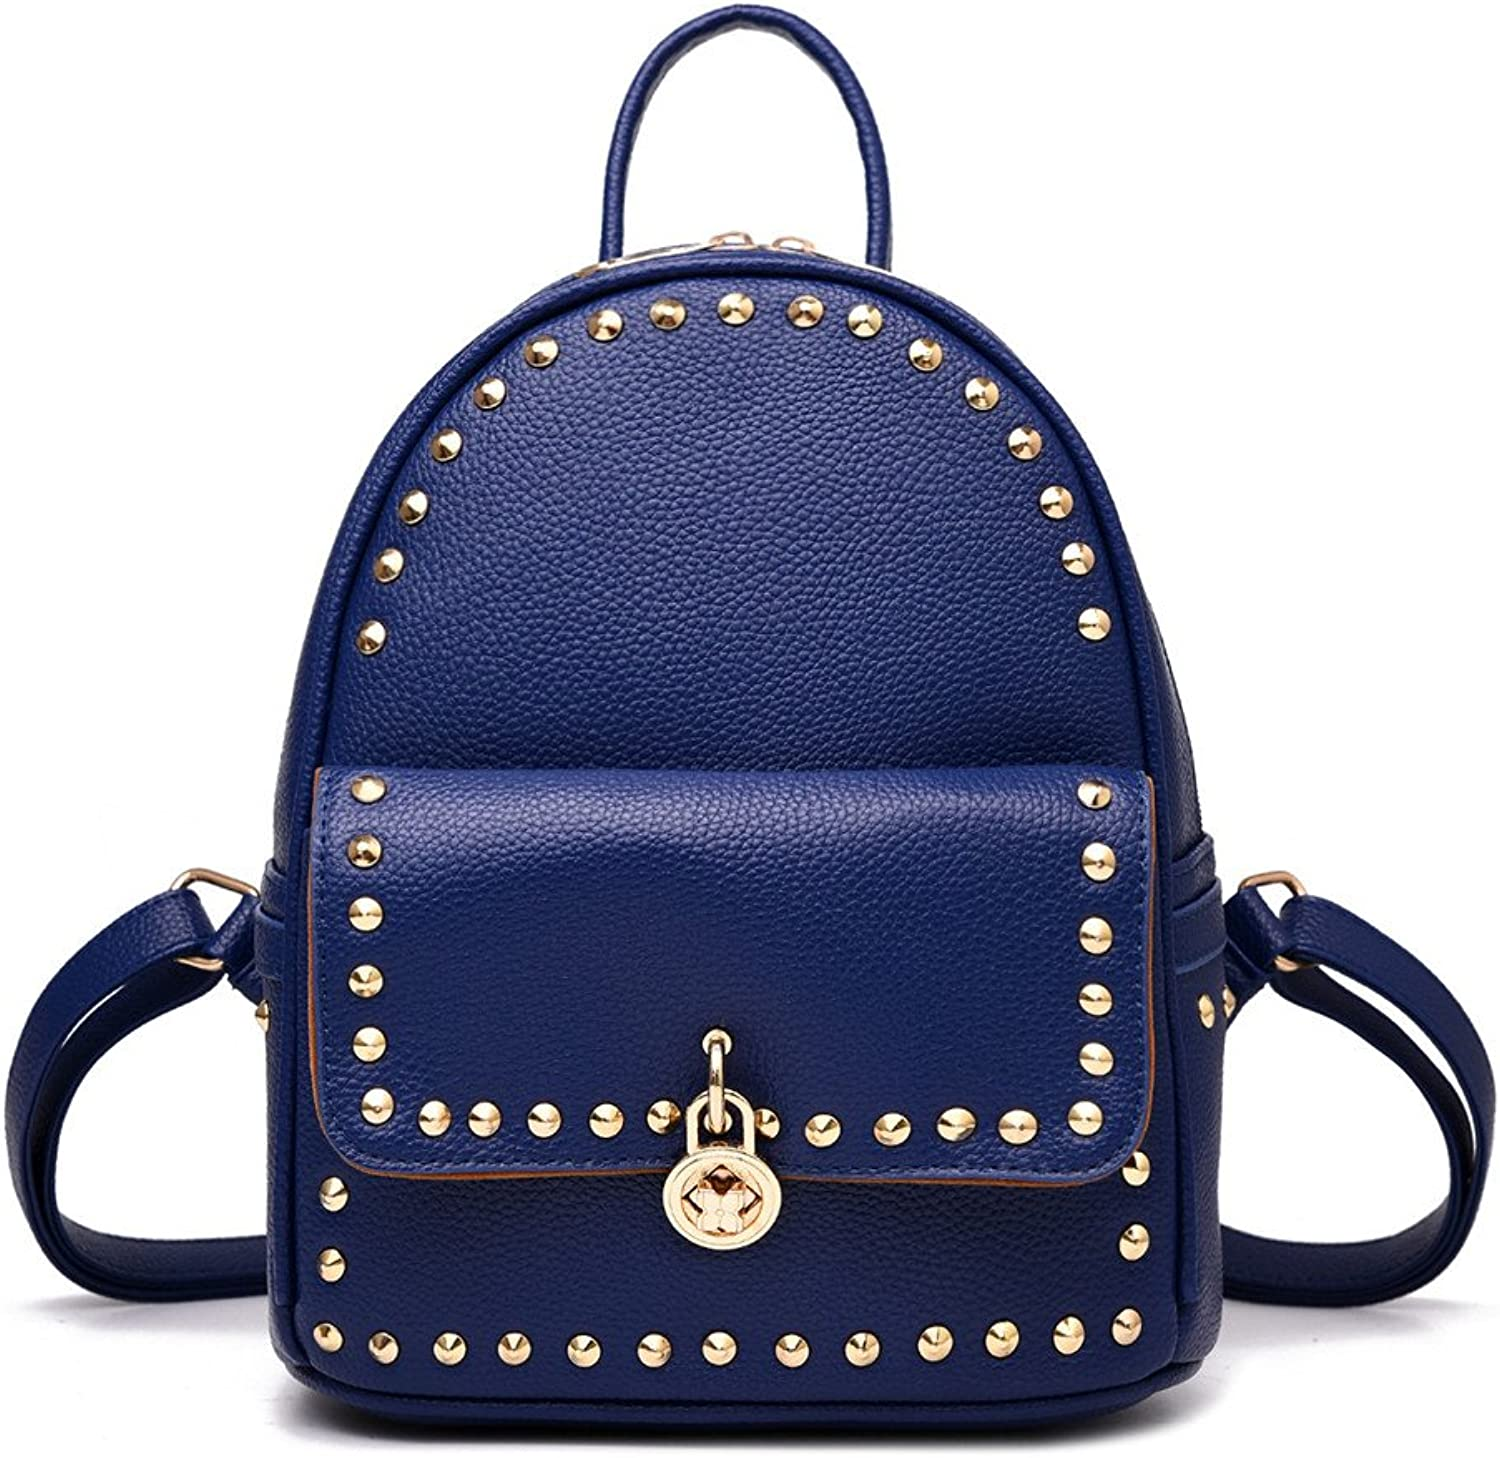 Ms. shoulders package preppy STUDENT BACKPACK leisure pu. Ms. backpack,A sect. F